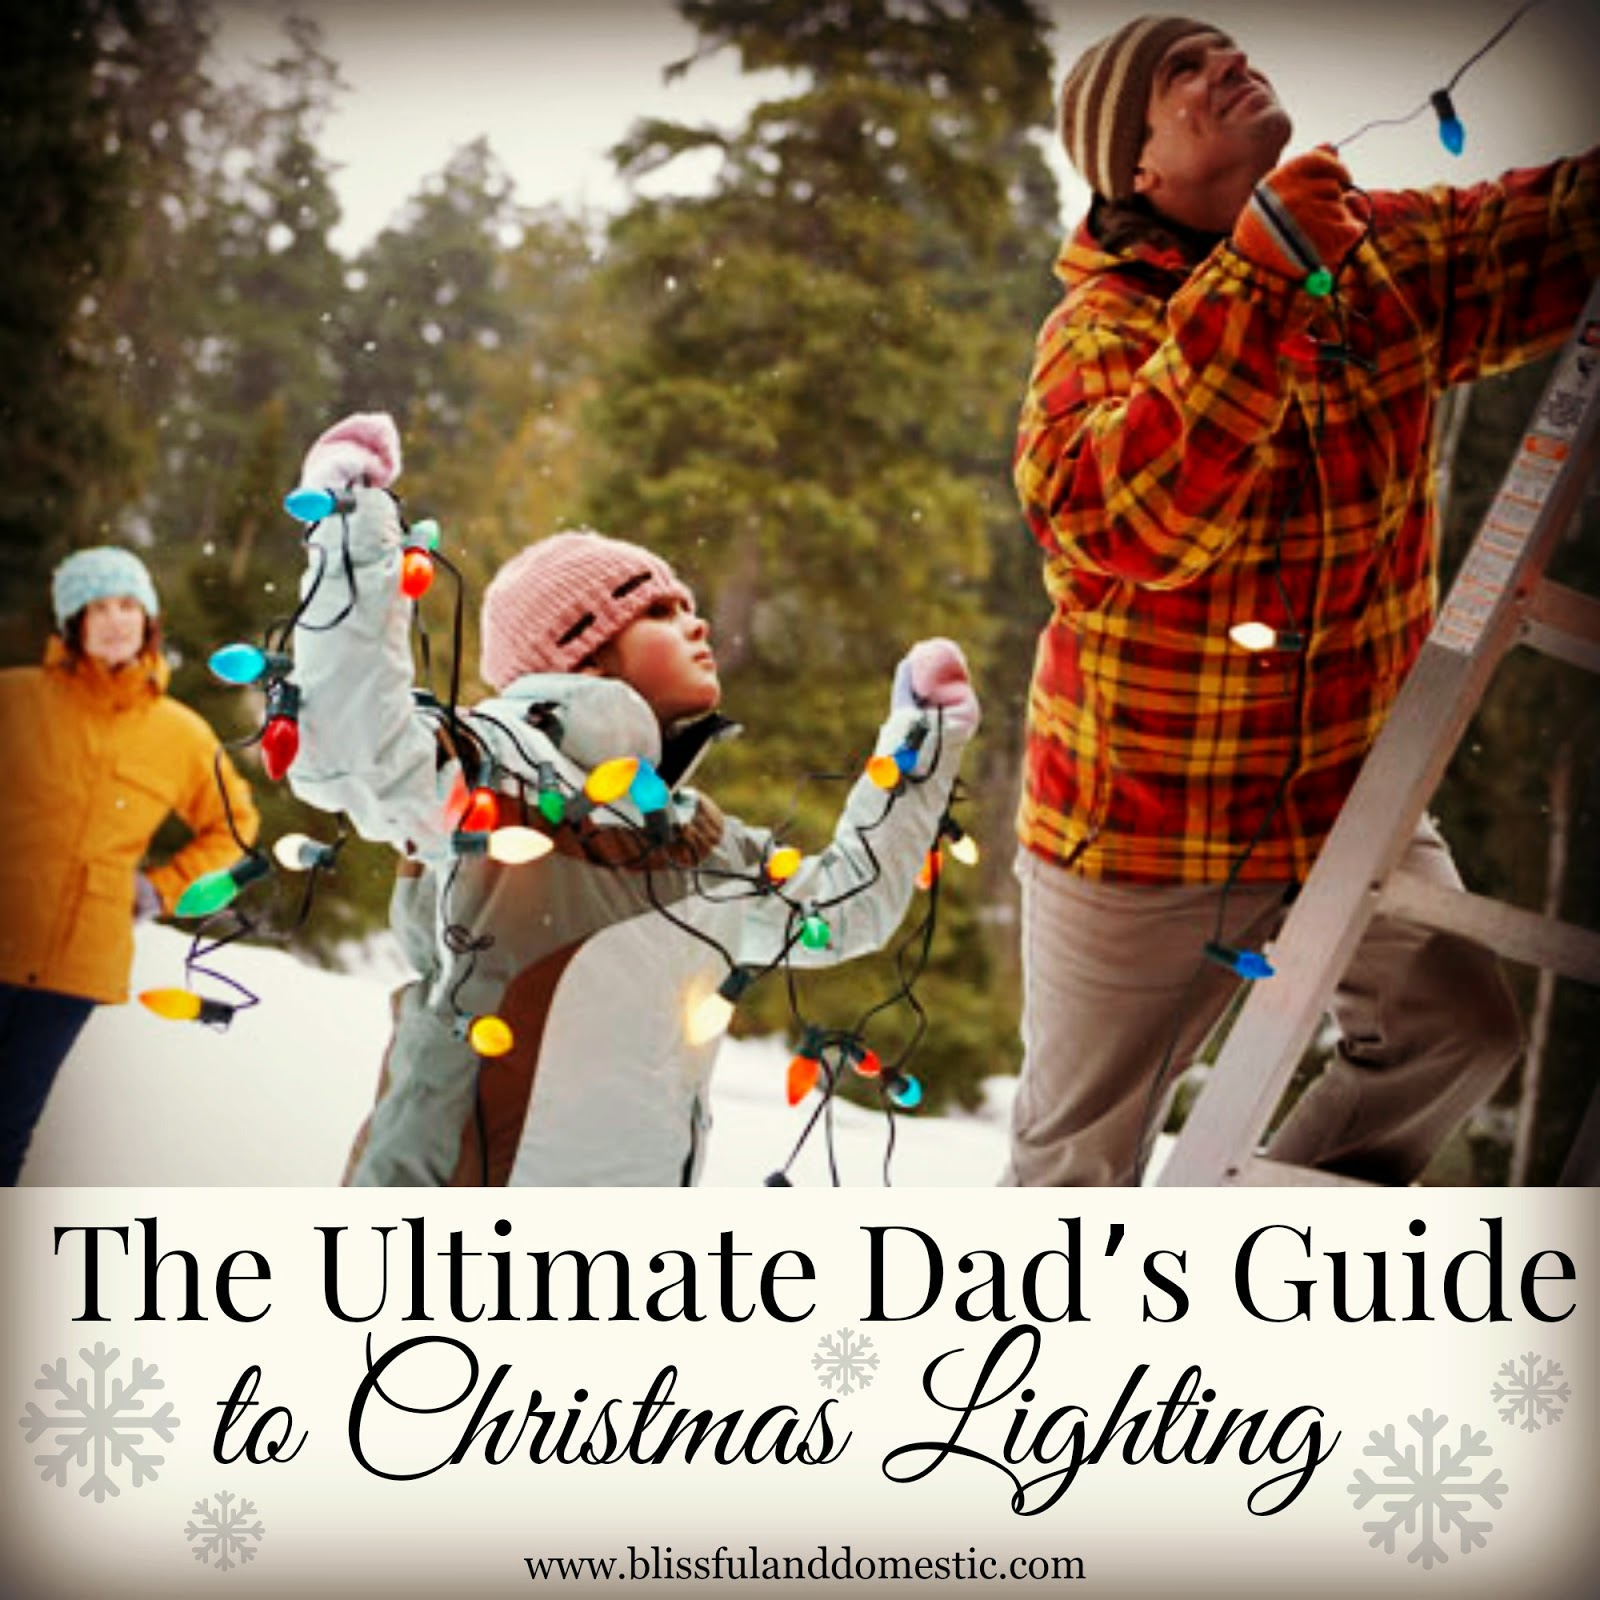 The Ultimate Dad's Guide to Christmas Lighting